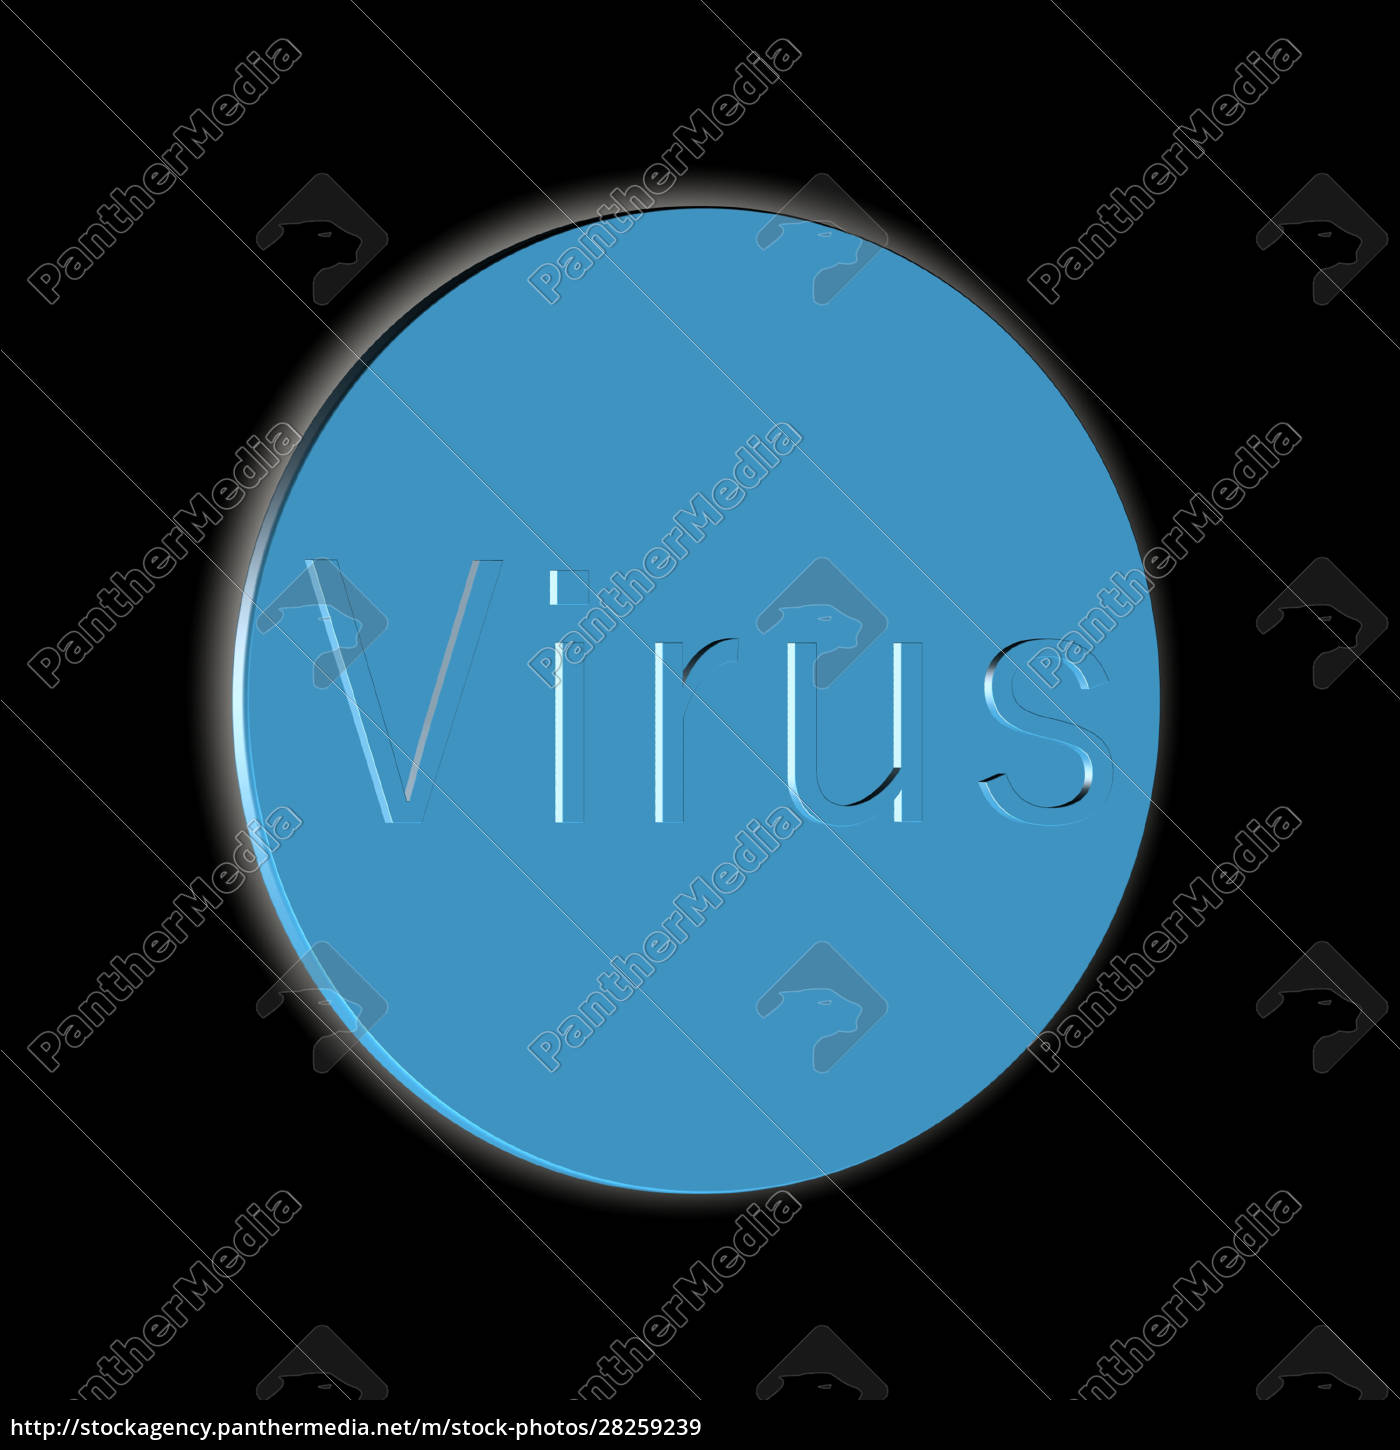 virus, -, word, or, text, as - 28259239